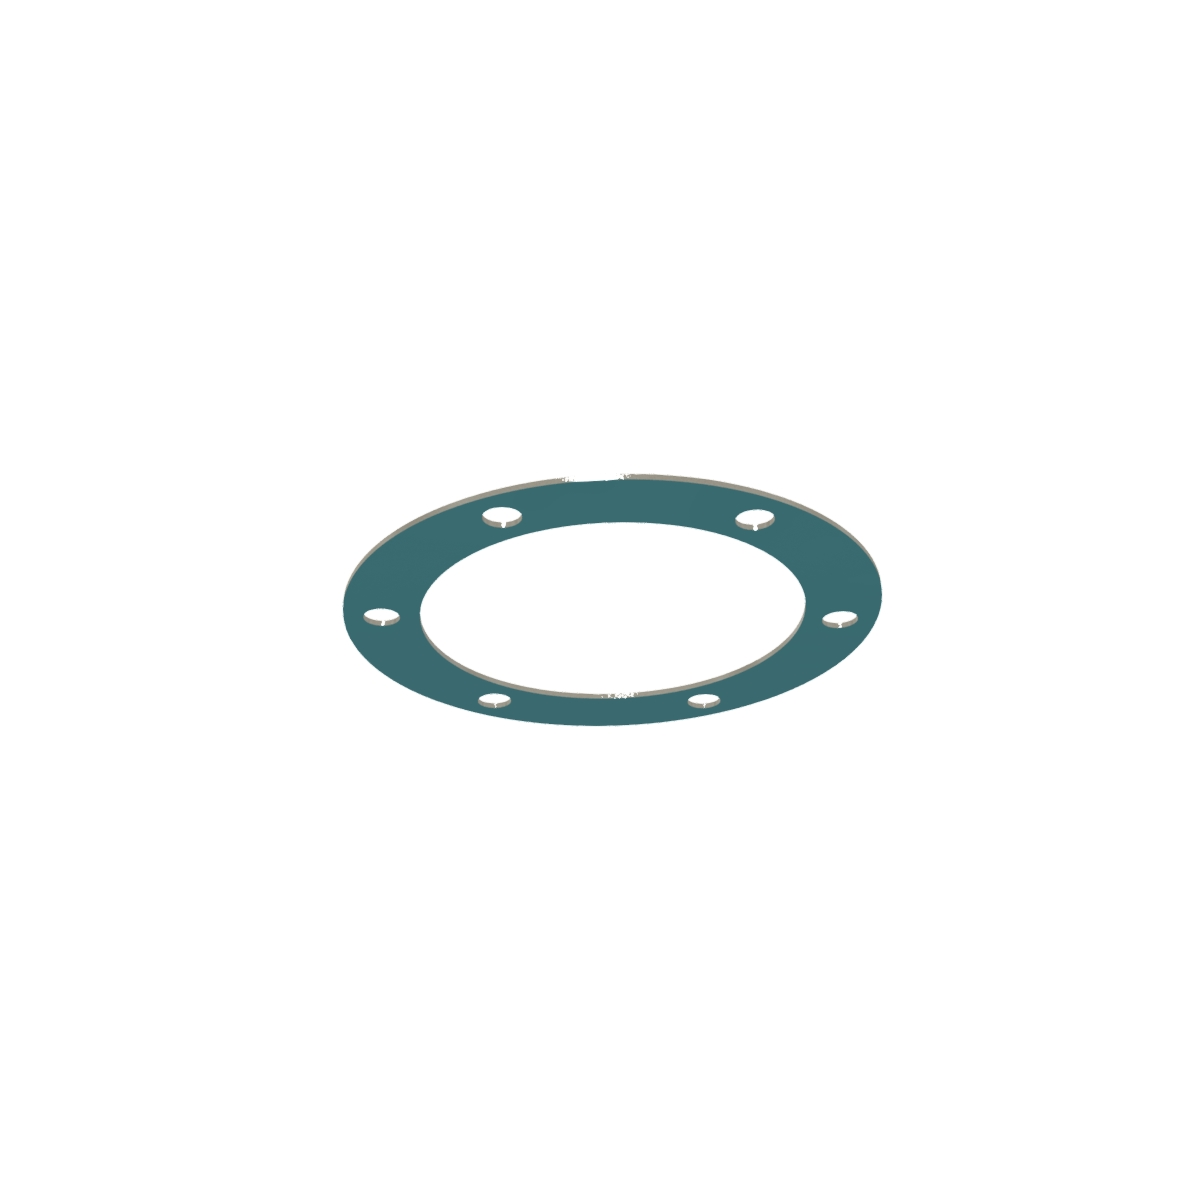 http://Product%20image%20of%20ICCP%20Accessories%20Gasket%20/%20Produktbilde%20av%20ICCP%20Tilbehør%20Pakning